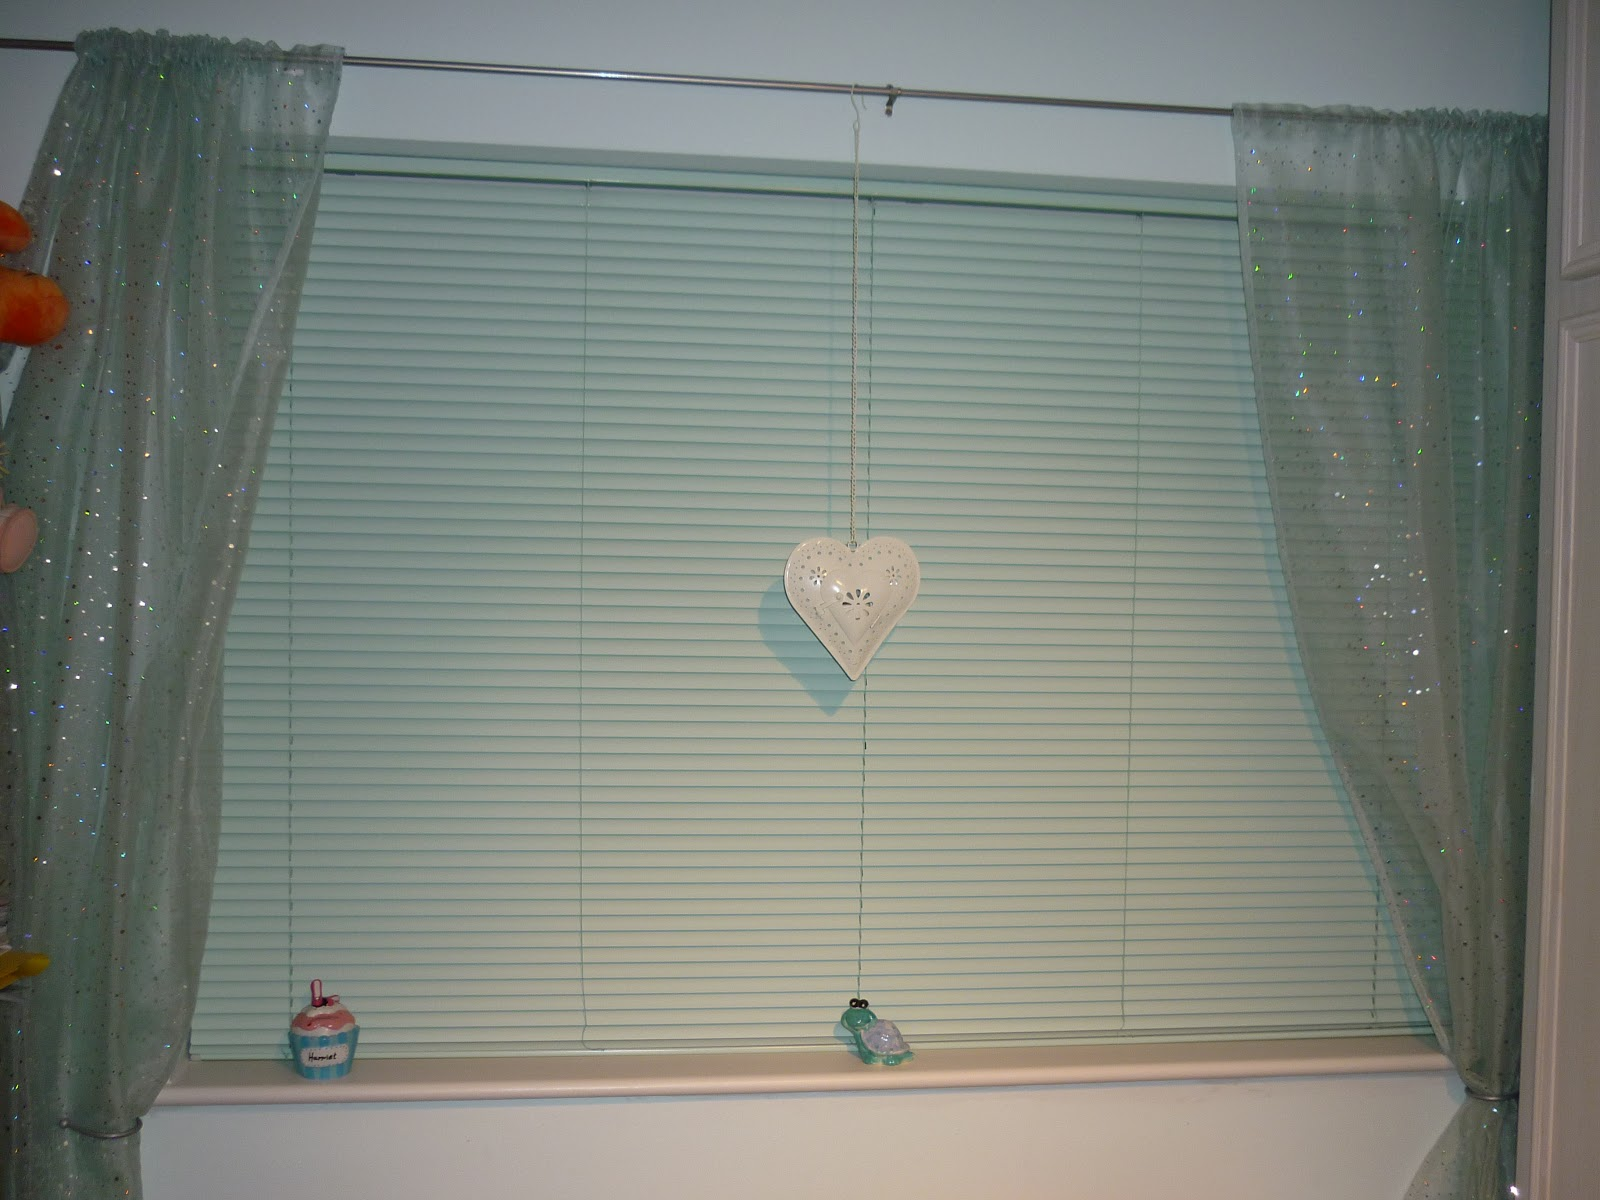 Kelloggsreviews modern blinds create privacy i have used hillarys blinds before to fit roller black out blinds and the excellent service i had from them 10 years later hasnt changed a bit solutioingenieria Images